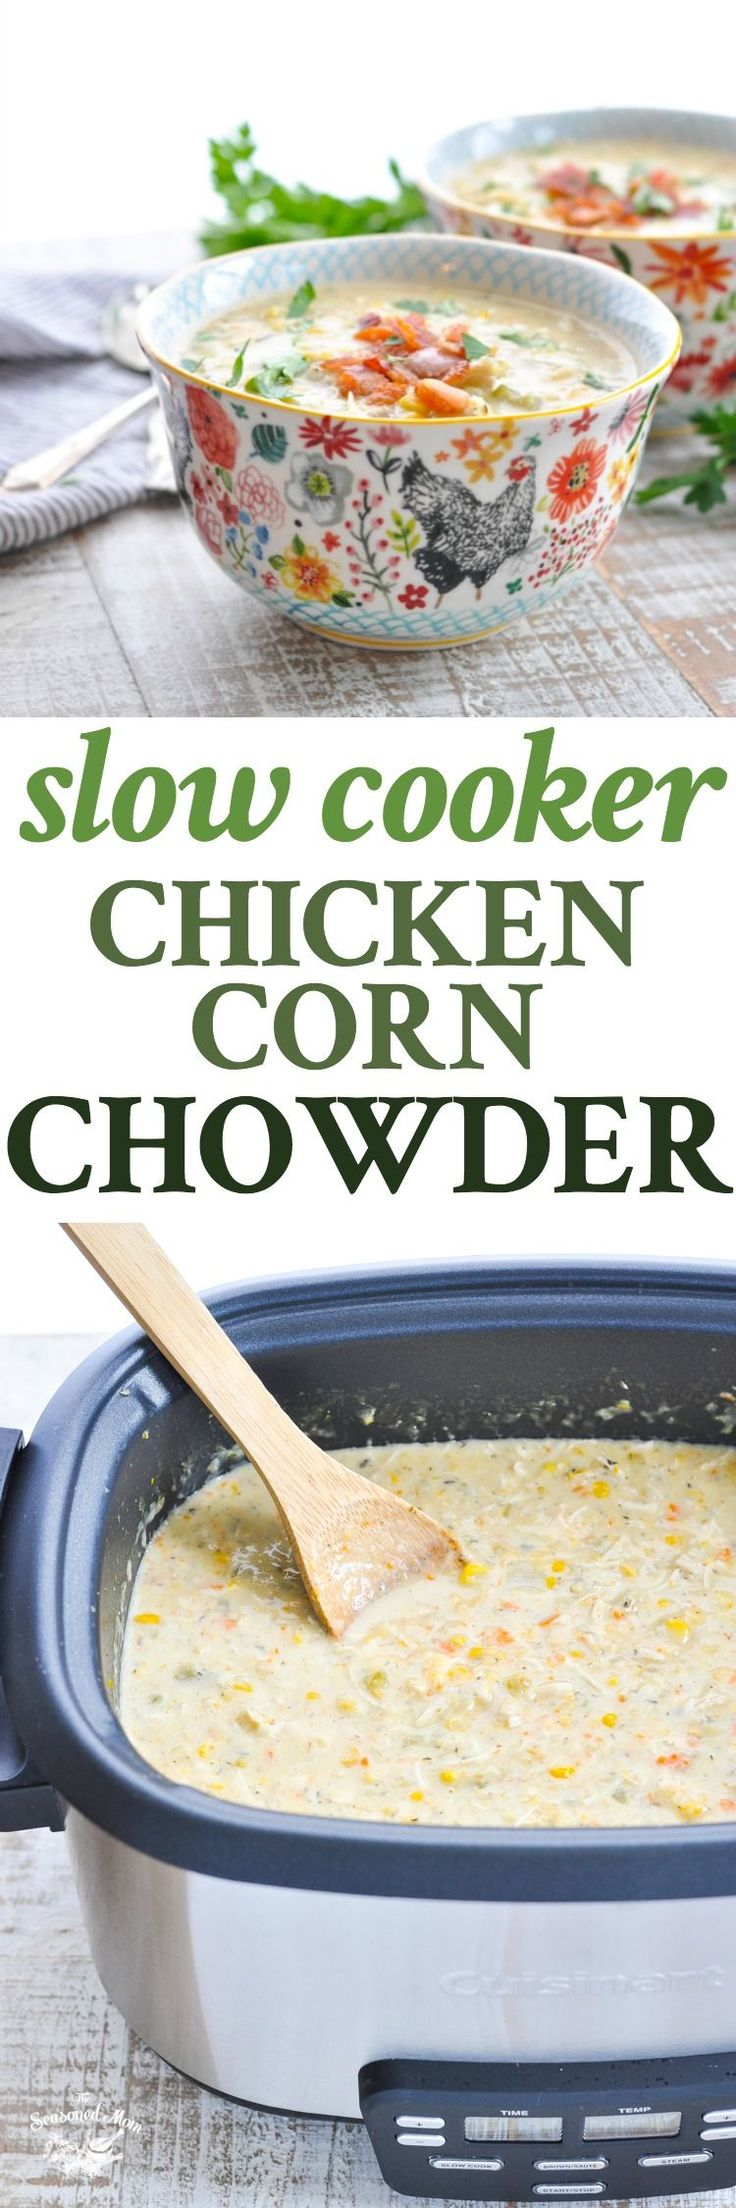 Long vertical image of bowl of corn chowder and slow cooker. #chickenrecipeshealthyslowcooker